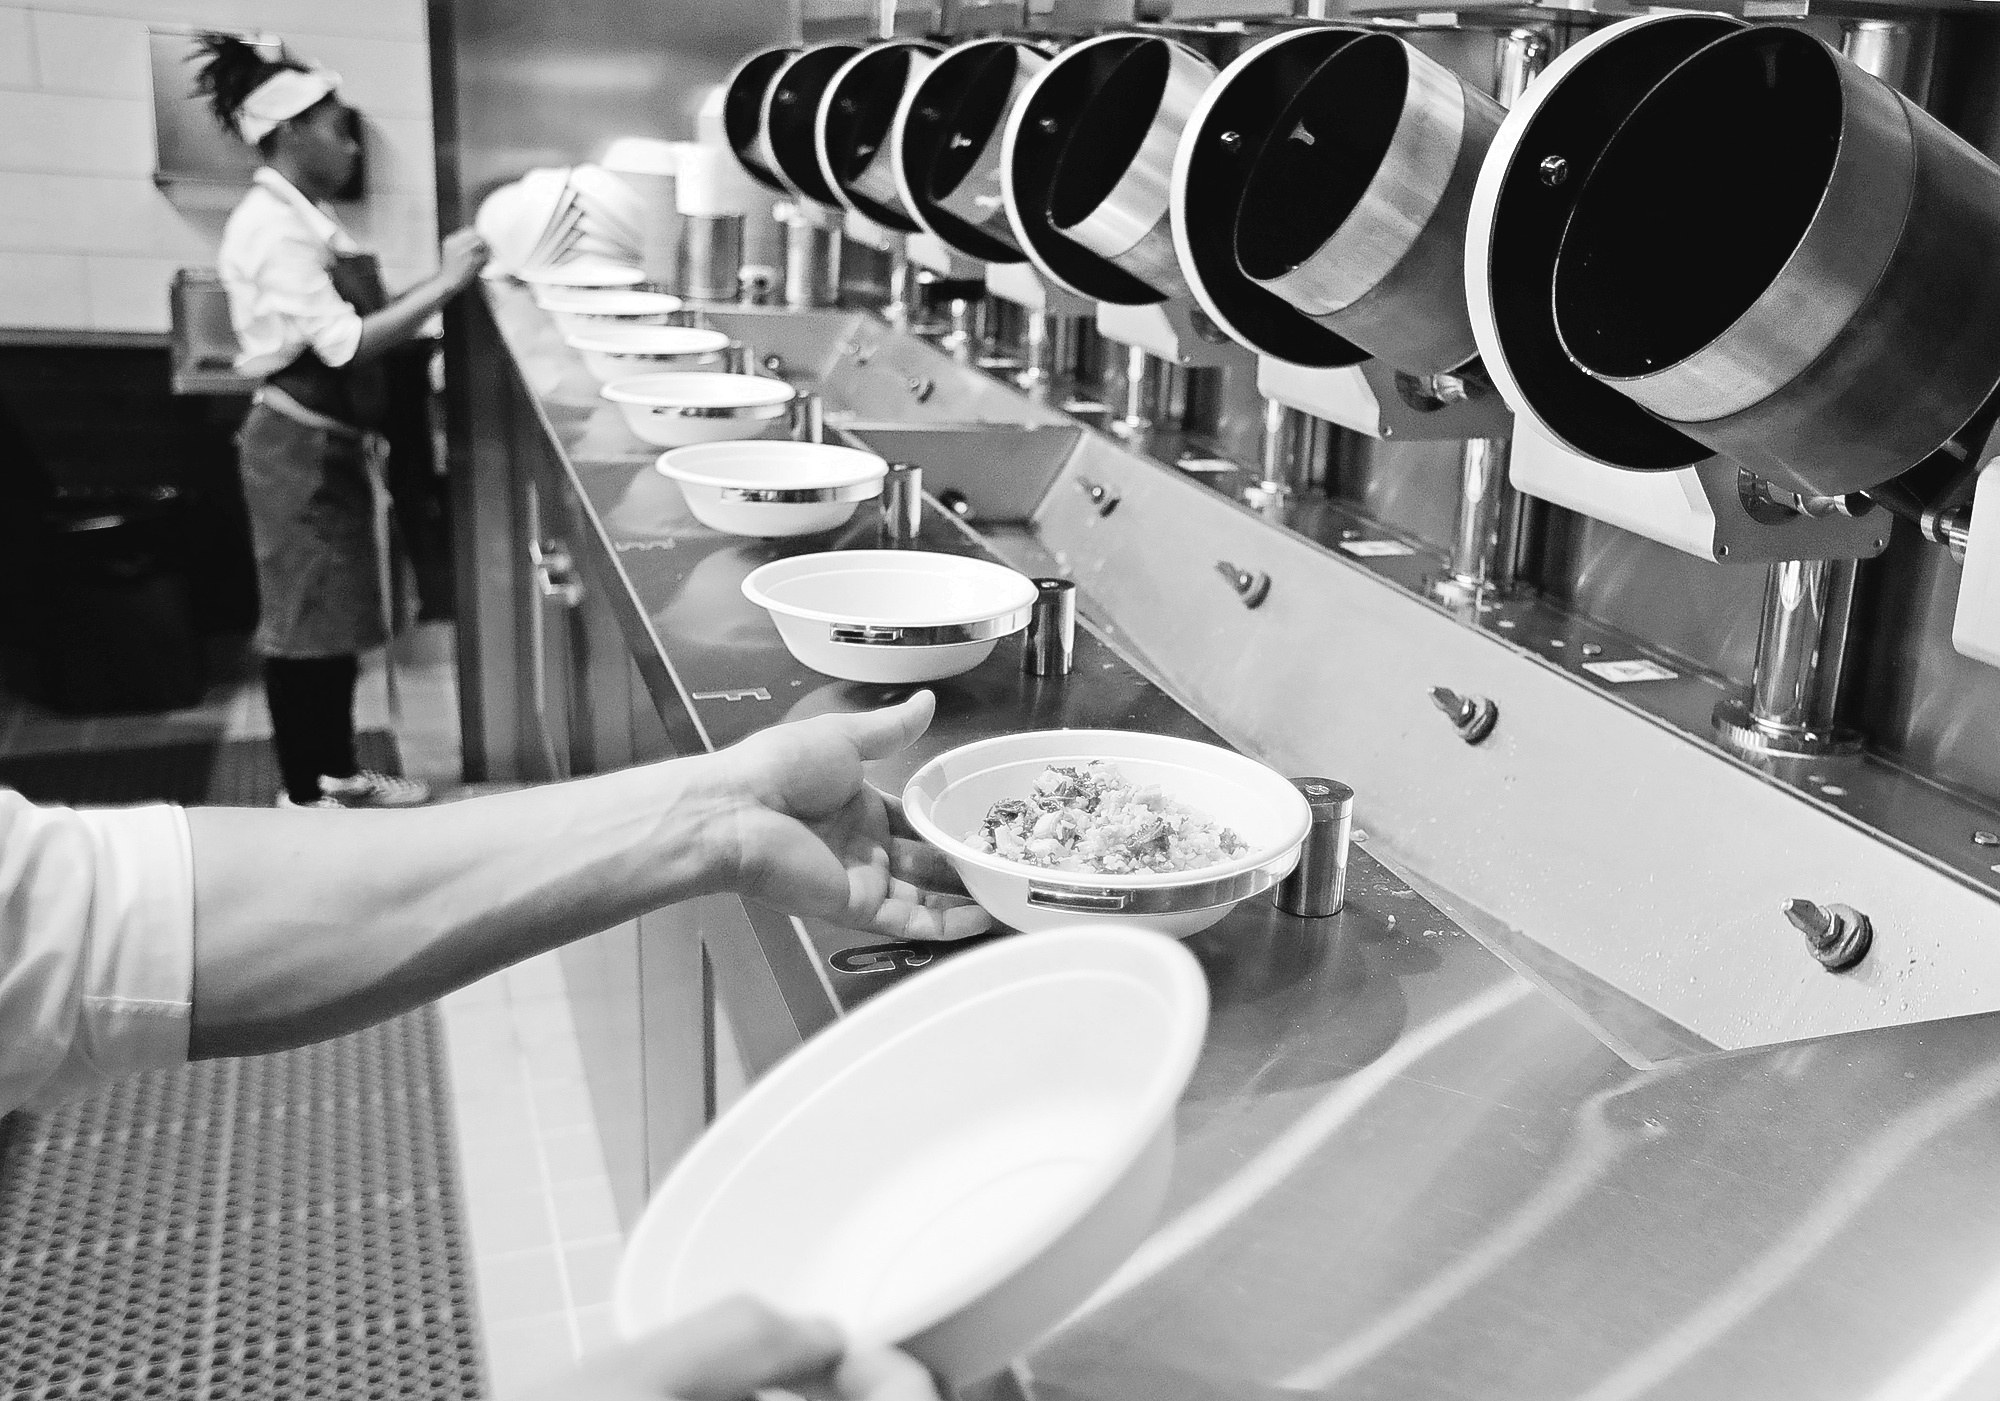 Robot fast-food chefs: Hype or a sign of industry change? – Aruba Today